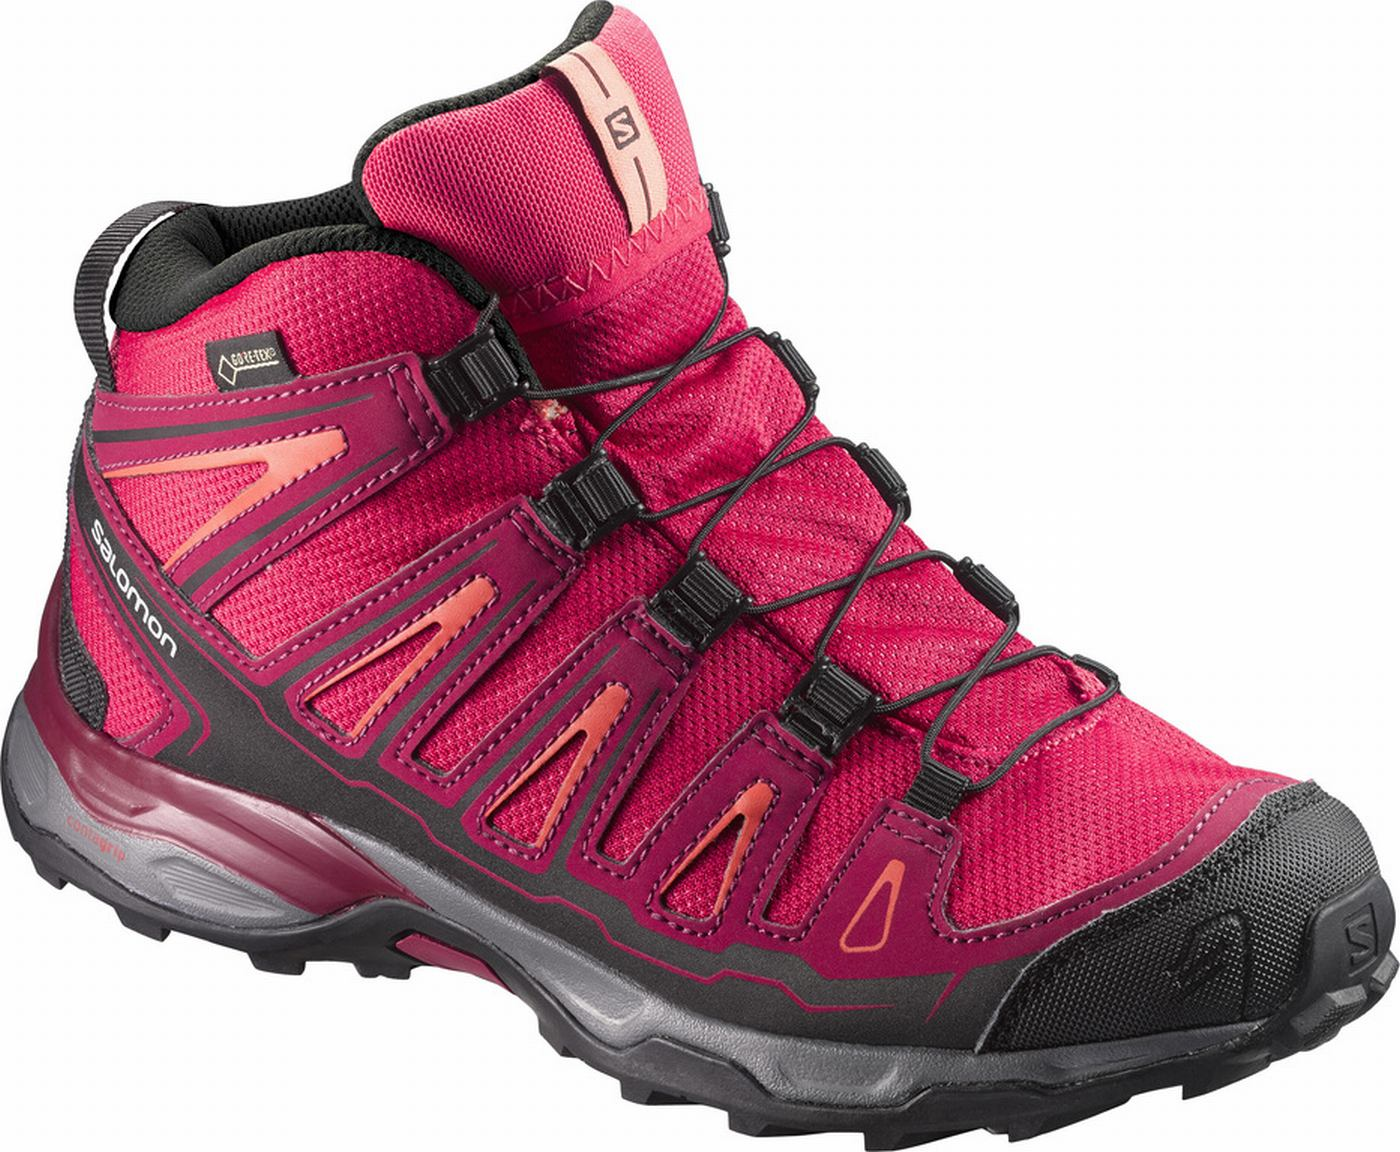 398651_0_Jr-x-ultra-mid-gtx-virtual-pink.thumb